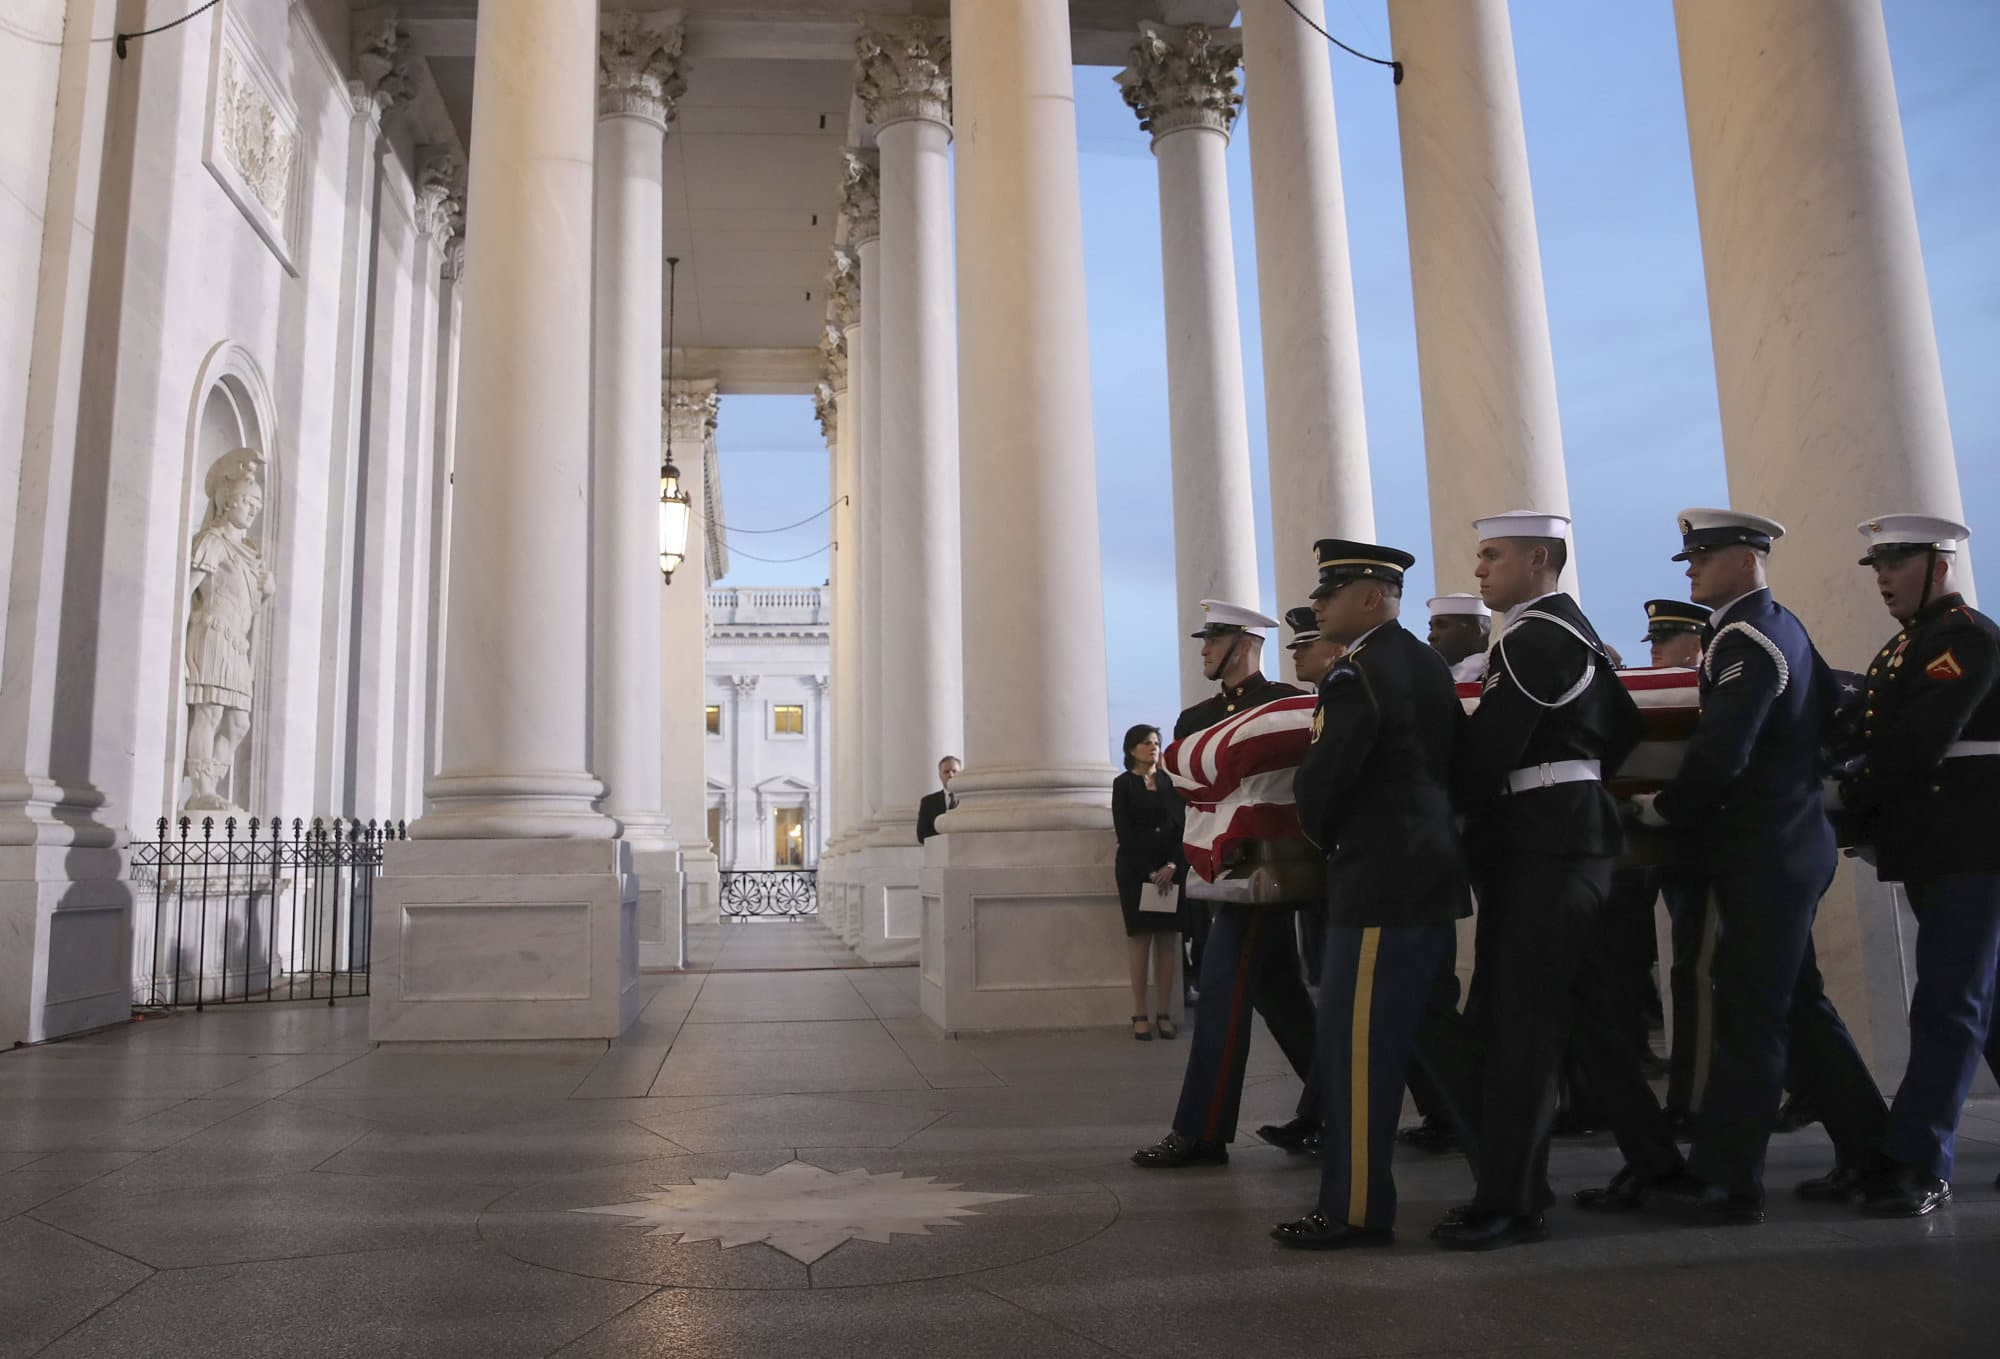 A military honor guard carries the casket of former President George H. W. Bush into the Capitol, Monday, Dec. 3, 2018 in Washington. (Win McNamee/Pool via AP)